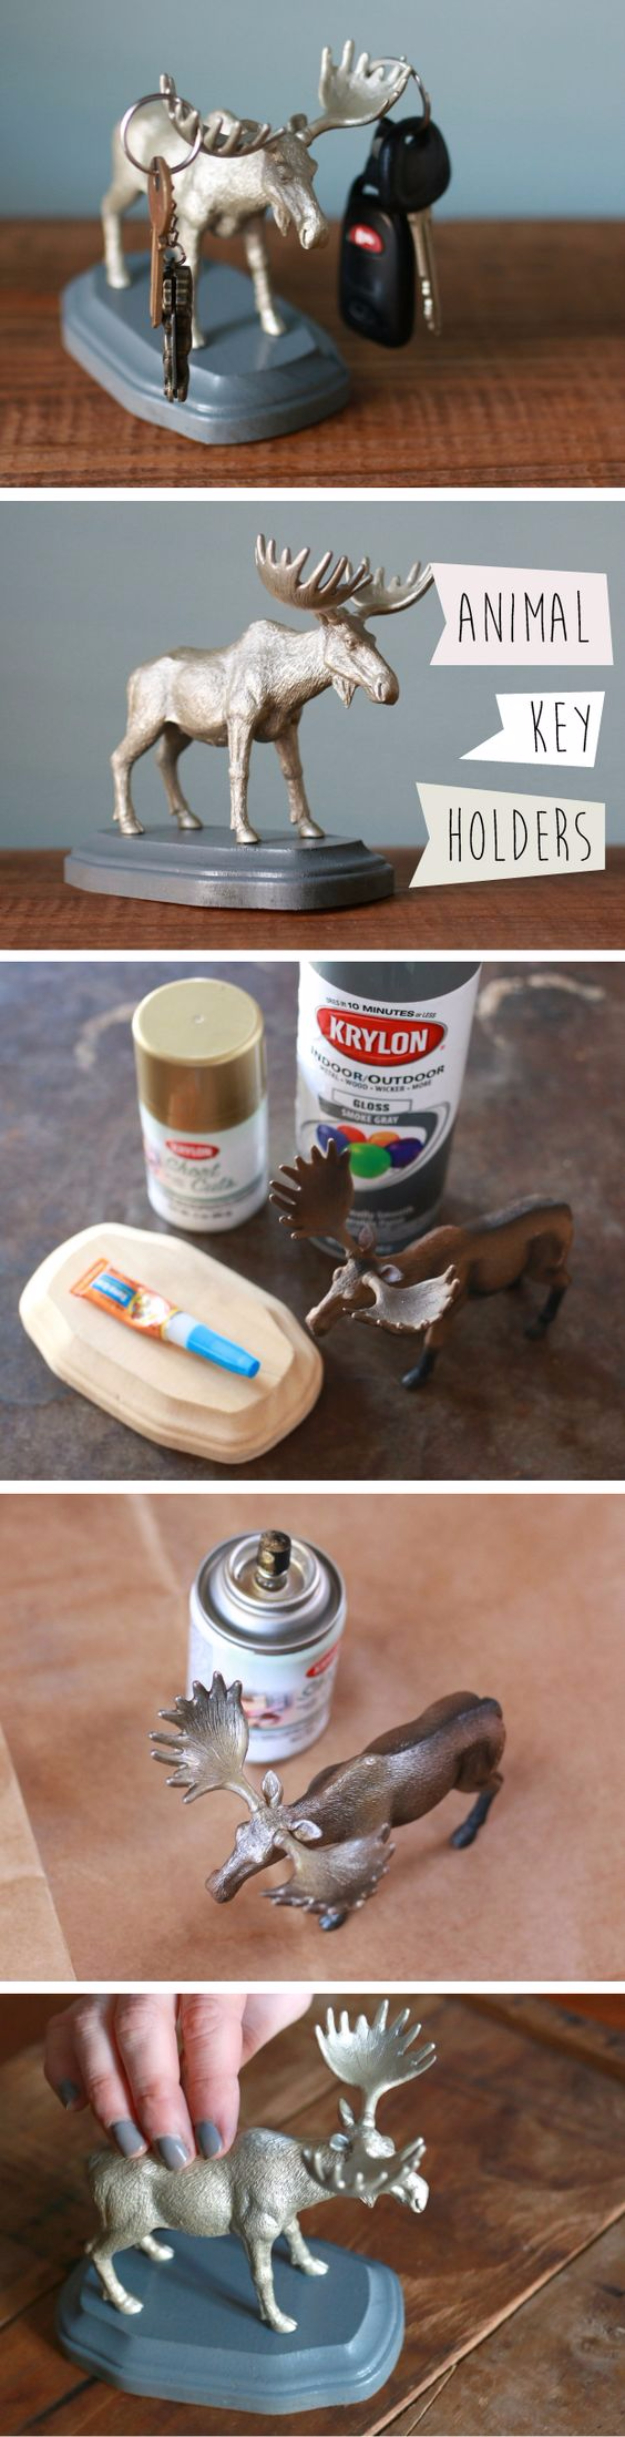 33 Cool DIYs With Spray Paint - DIY Animal Key Holders - Easy Spray Paint Decor, Fun Do It Yourself Spray Paint Ideas, Cool Spray Paint Projects To Try, Upcycled And Repurposed, Restore Old Items With Spray Paint